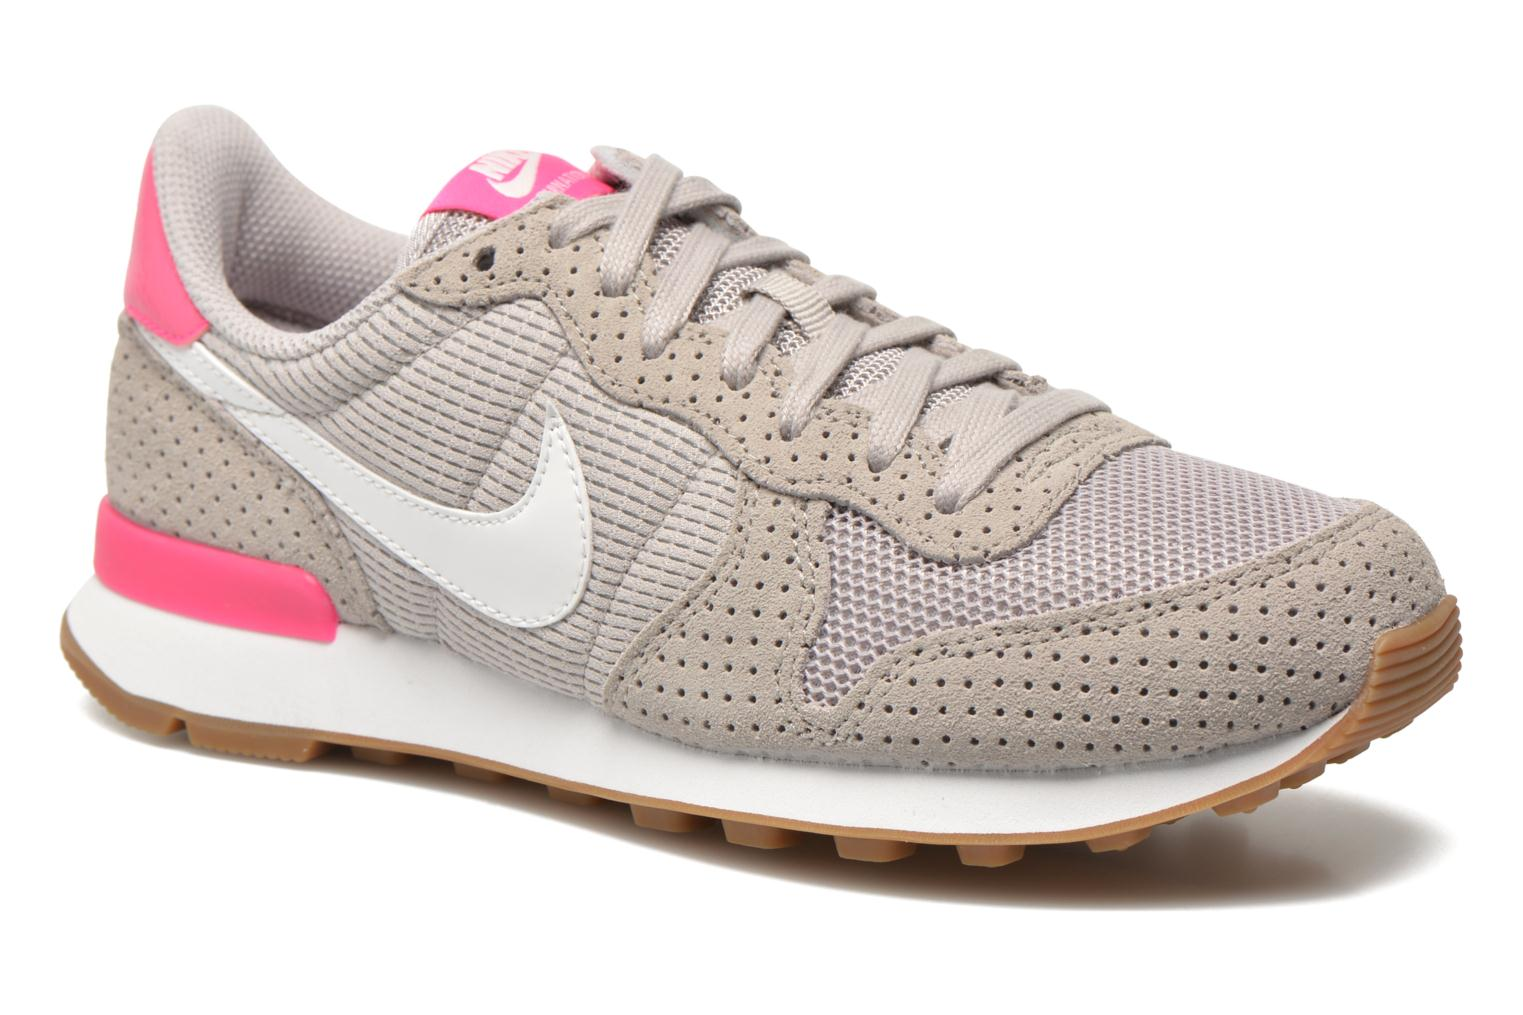 Wmns Internationalist Lt Irn Or/Smmt Wht-Gm Md Brwn